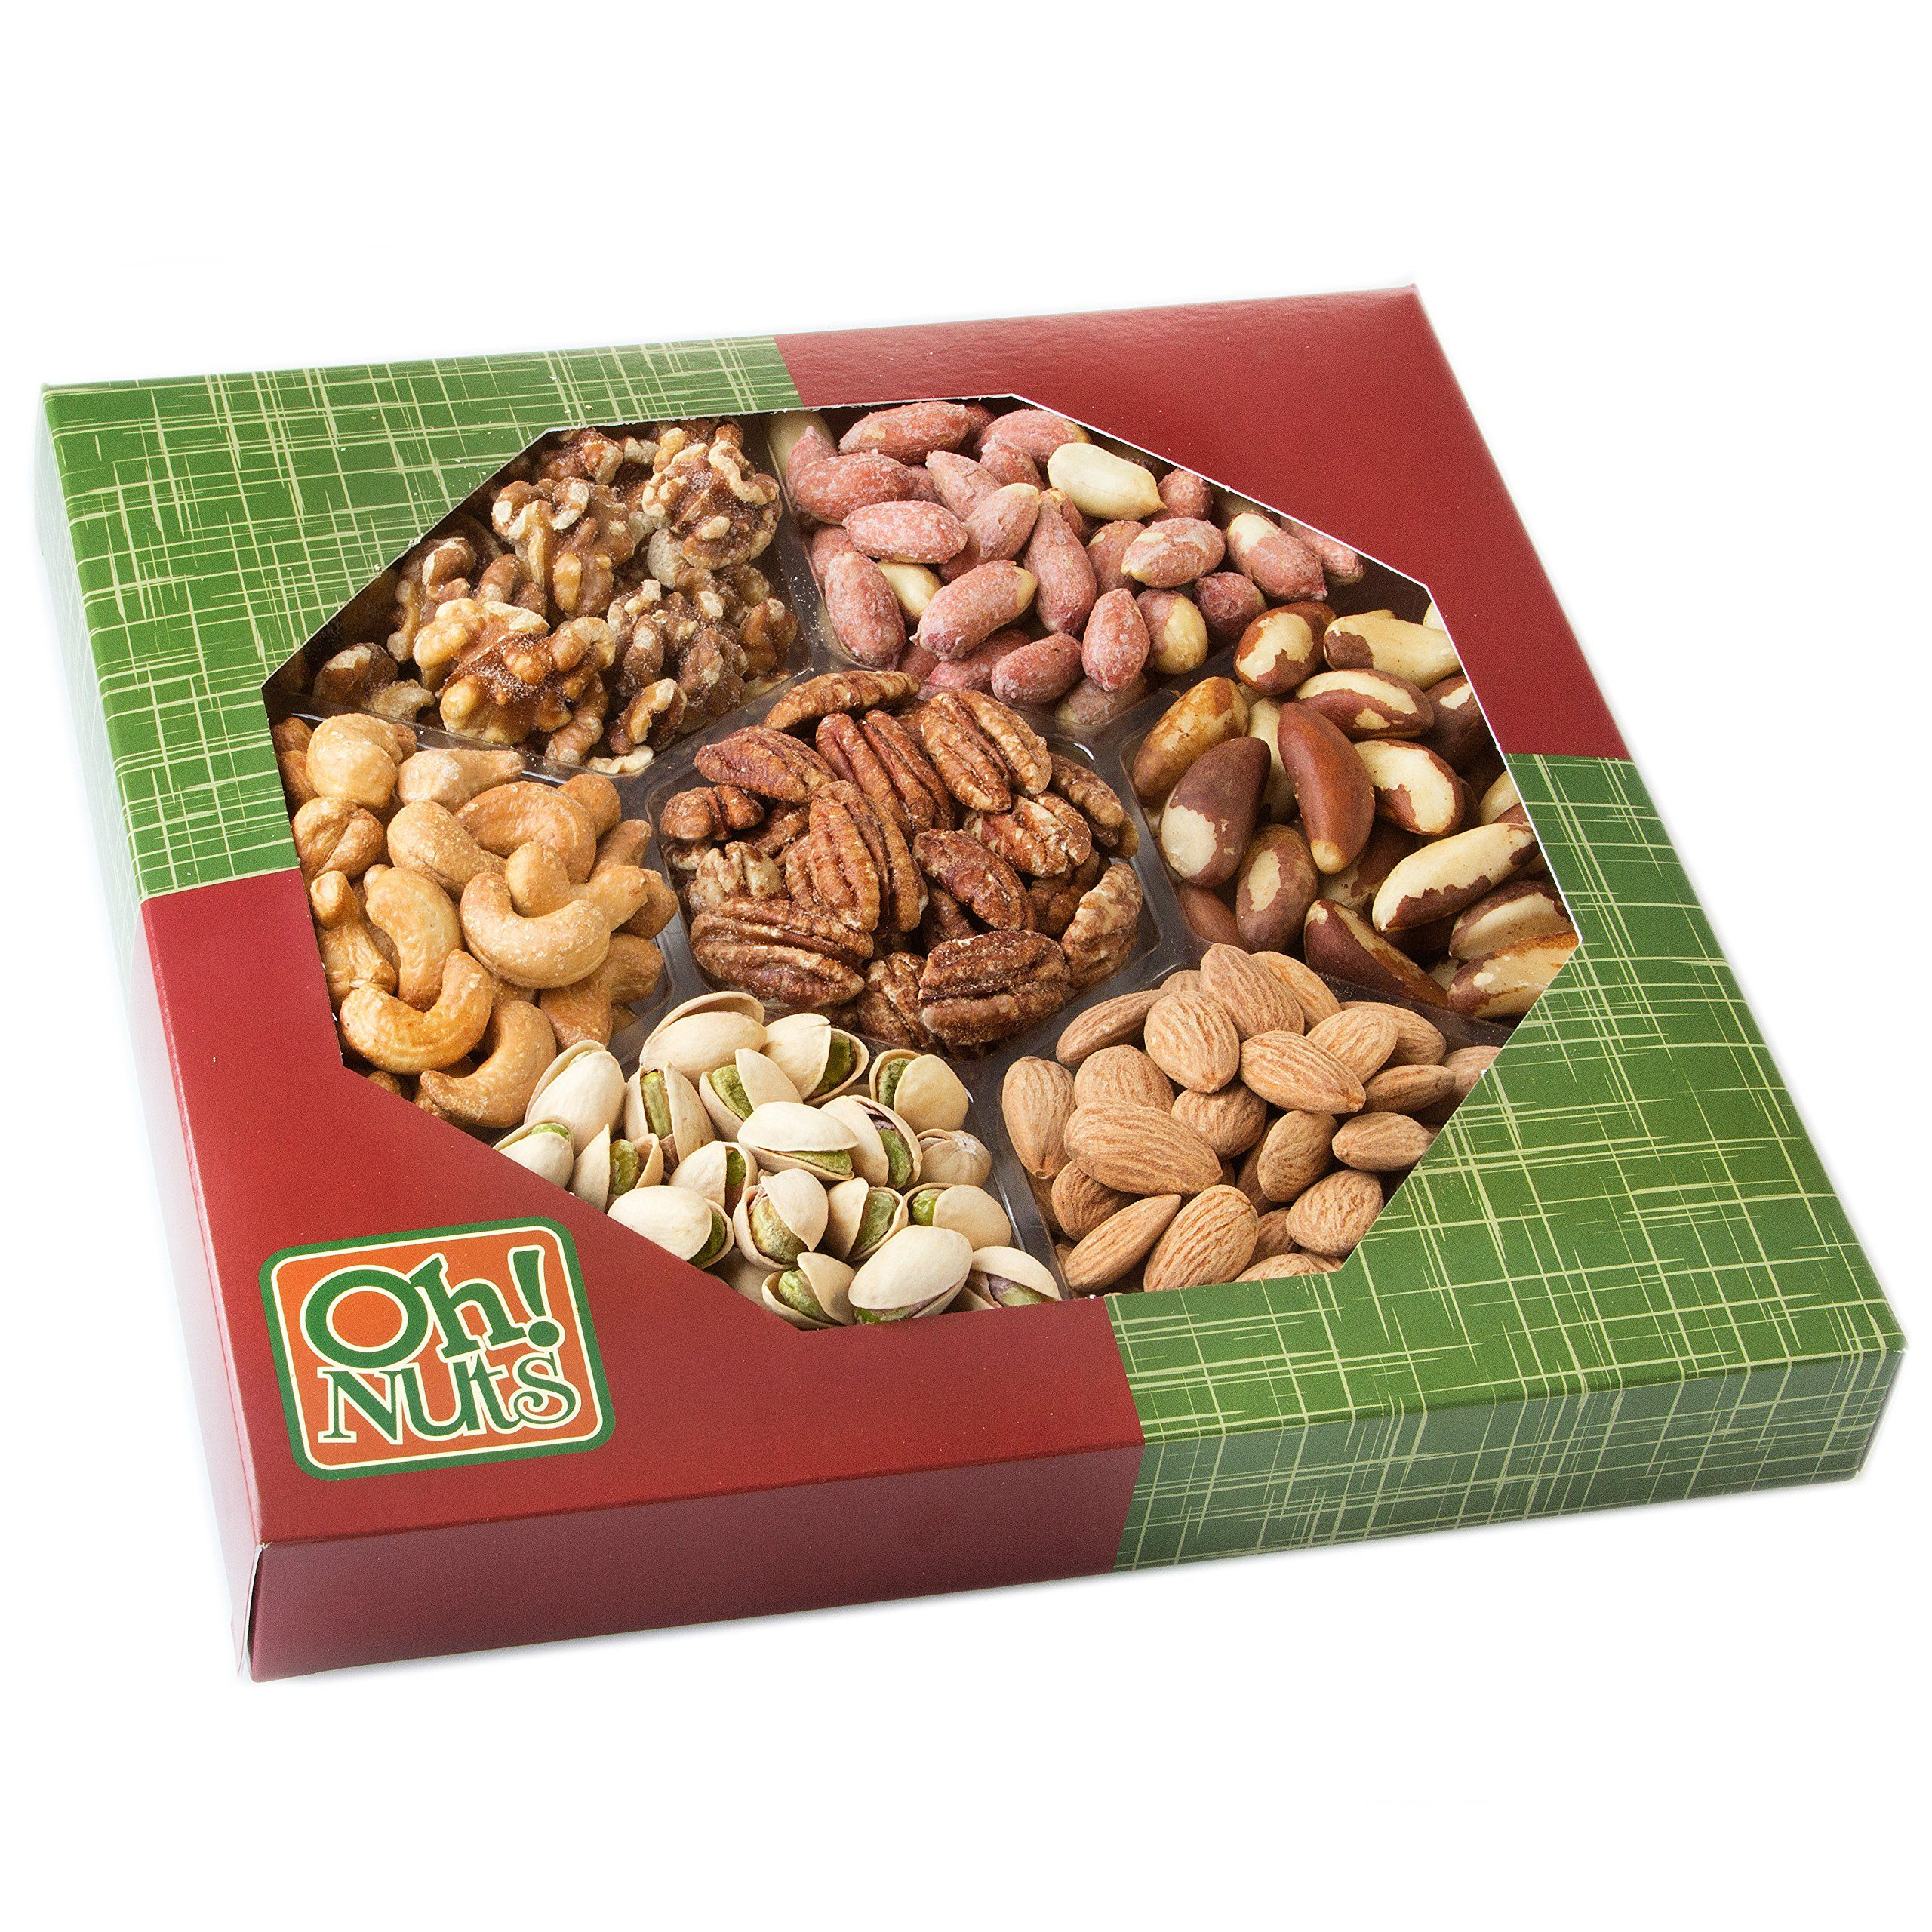 Healthy Snacks Dry Roasted Nuts Unsalted 7 Variety Food Gift No Additives No Oil No Salt Great Gift For Him Or Her V Healthy Food Gifts Food Gifts Variety Food